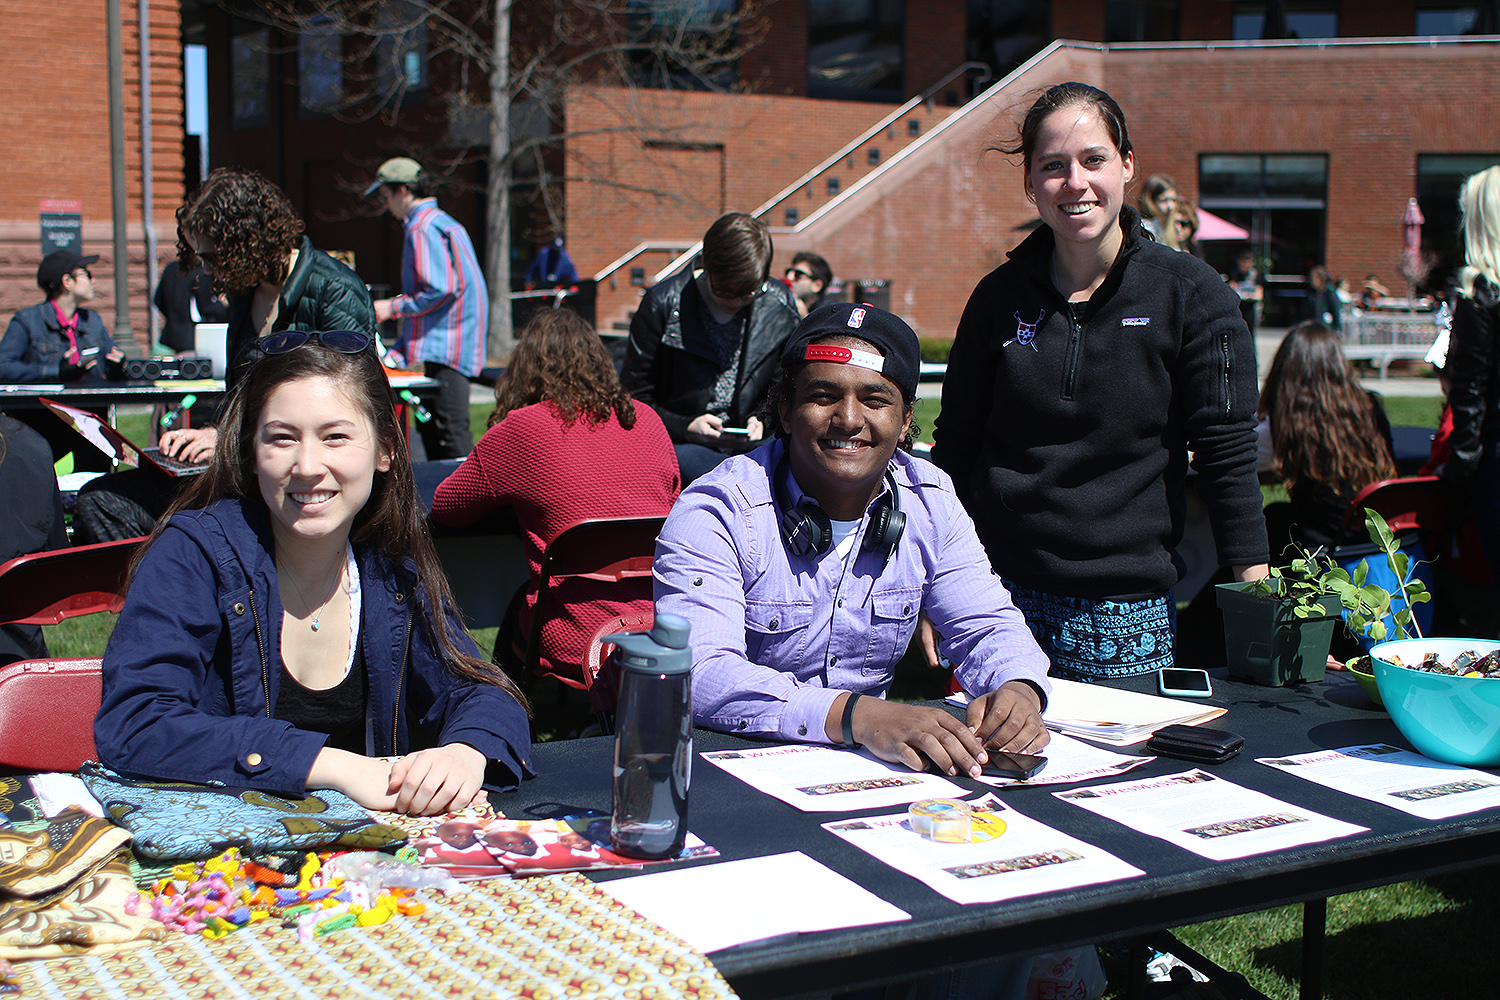 During the Student Activities Fair on April 15, students spoke to Class of 2020 admits about various clubs and activities at Wesleyan.